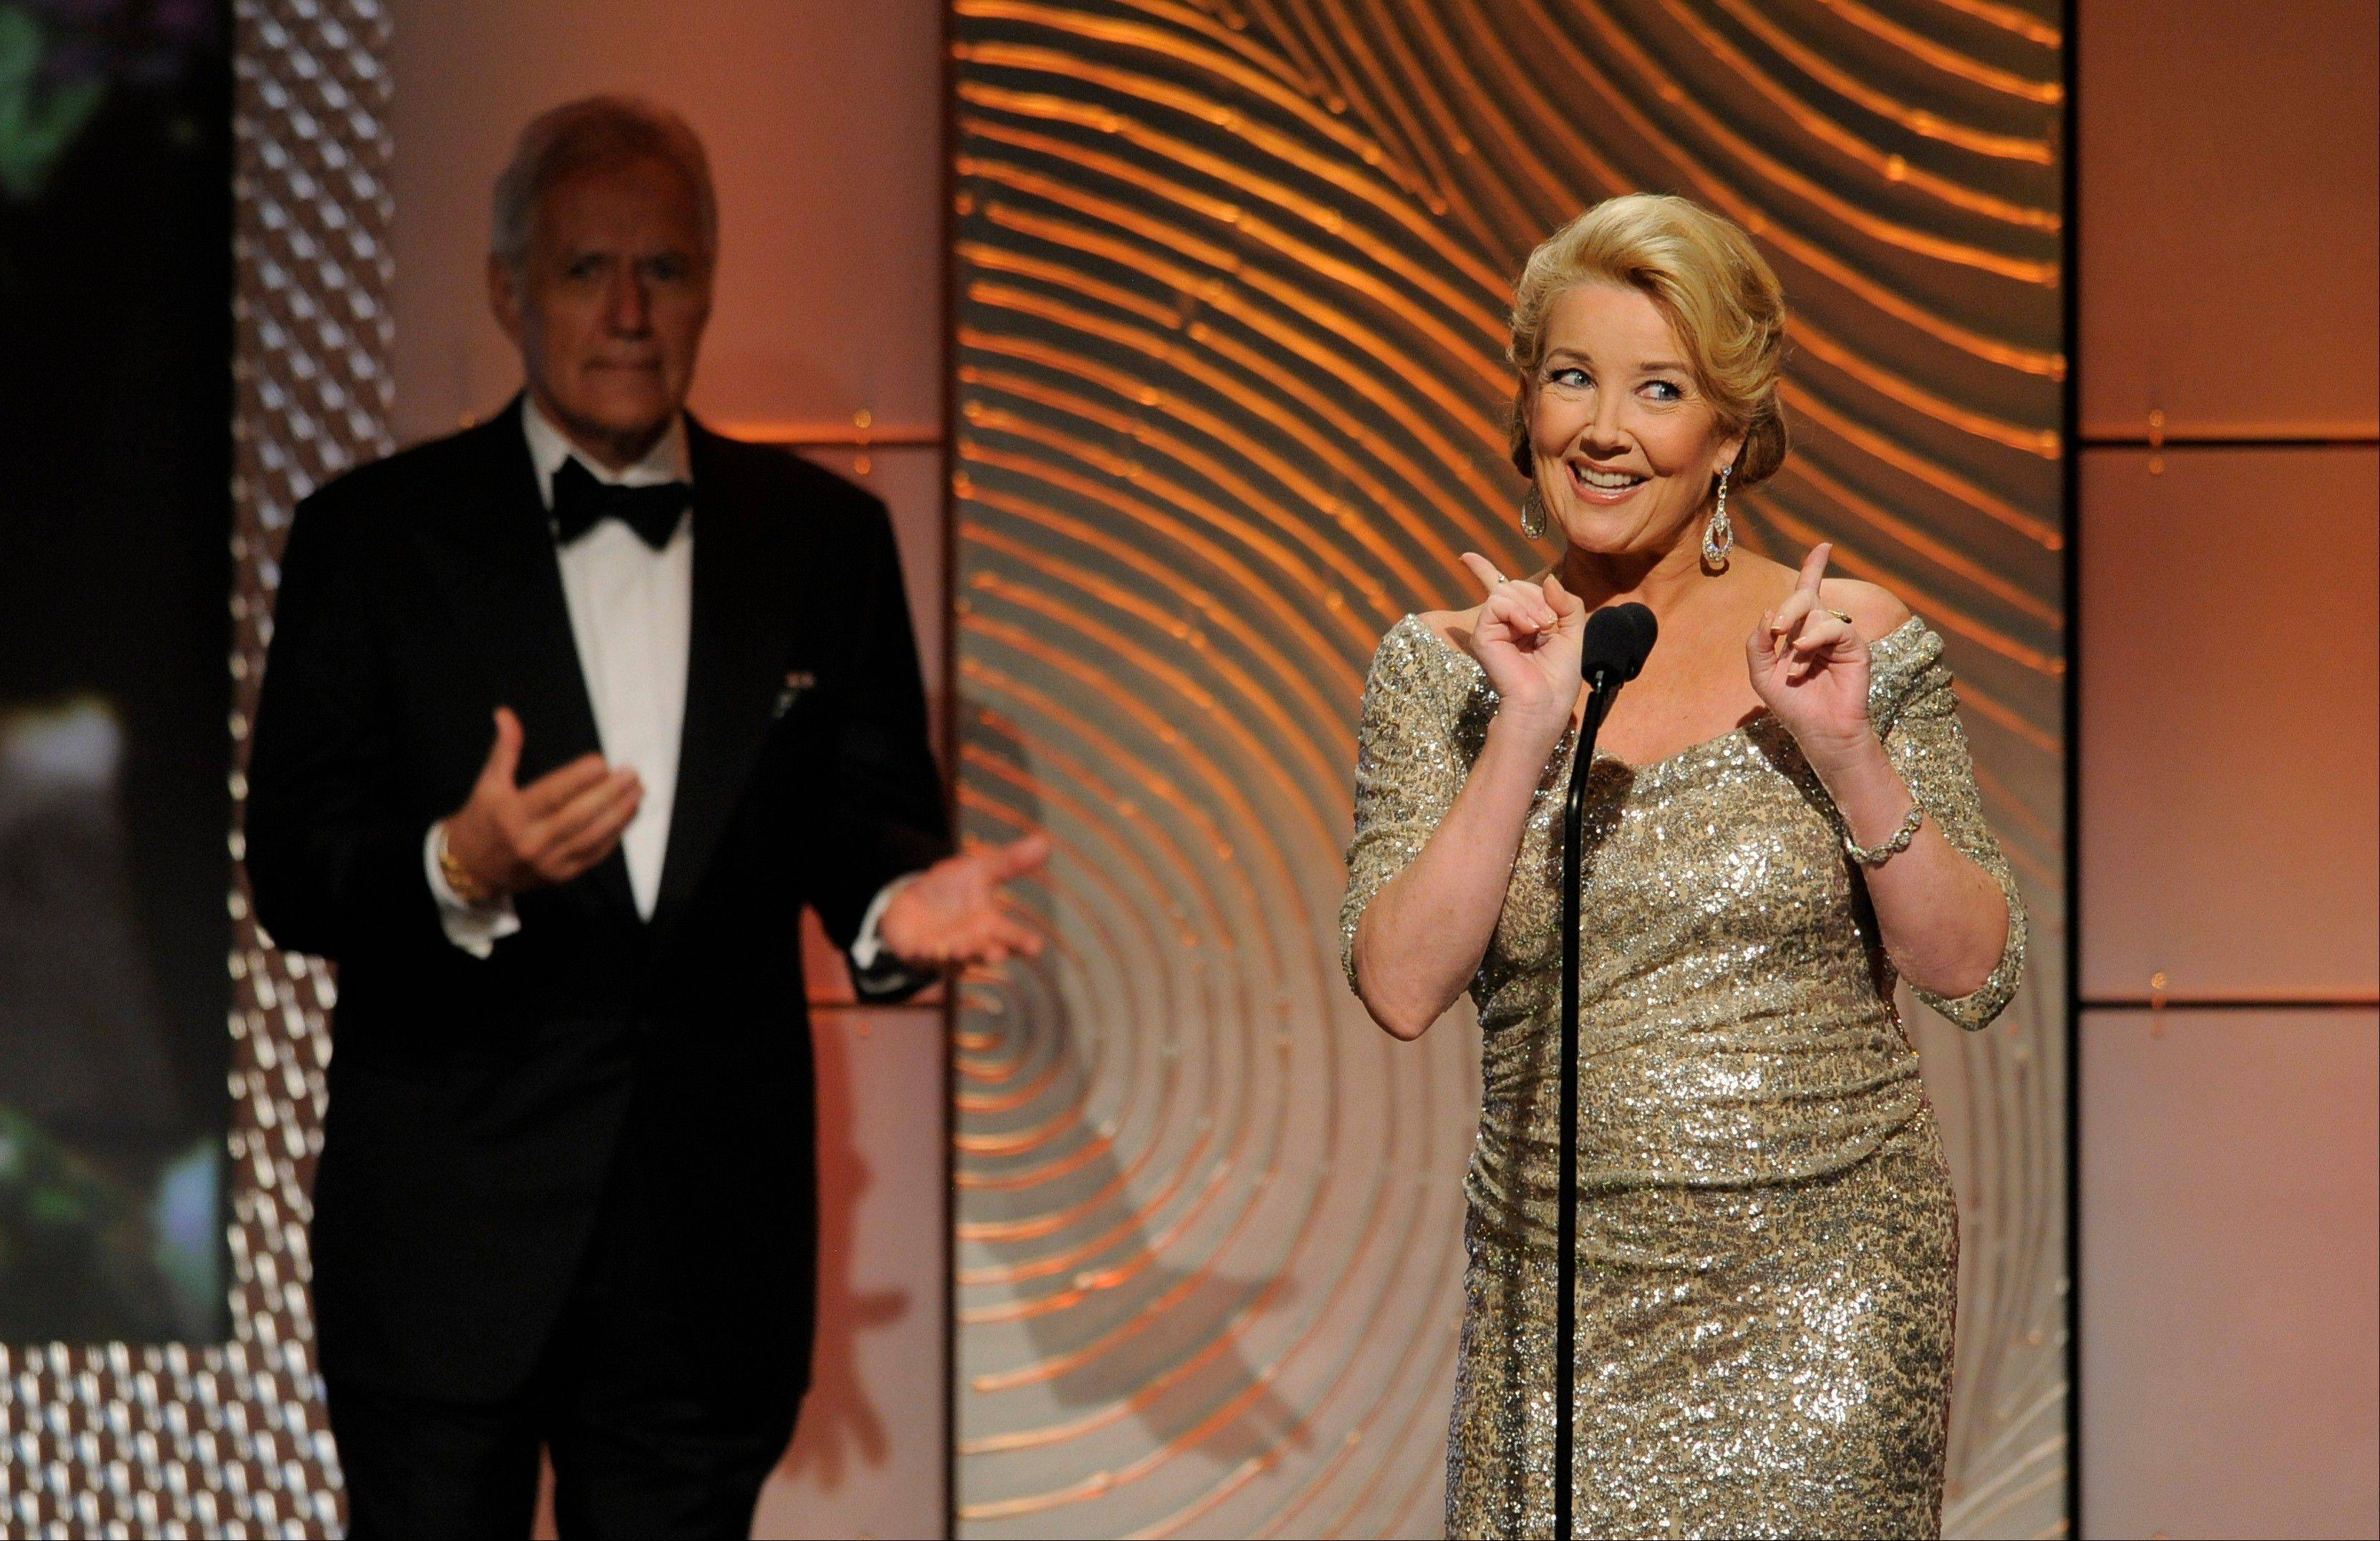 Melody Thomas Scott speaks on stage at the 40th Annual Daytime Emmy Awards on Sunday, June 16, 2013, in Beverly Hills, Calif. Looking on in background is Alex Trebek.